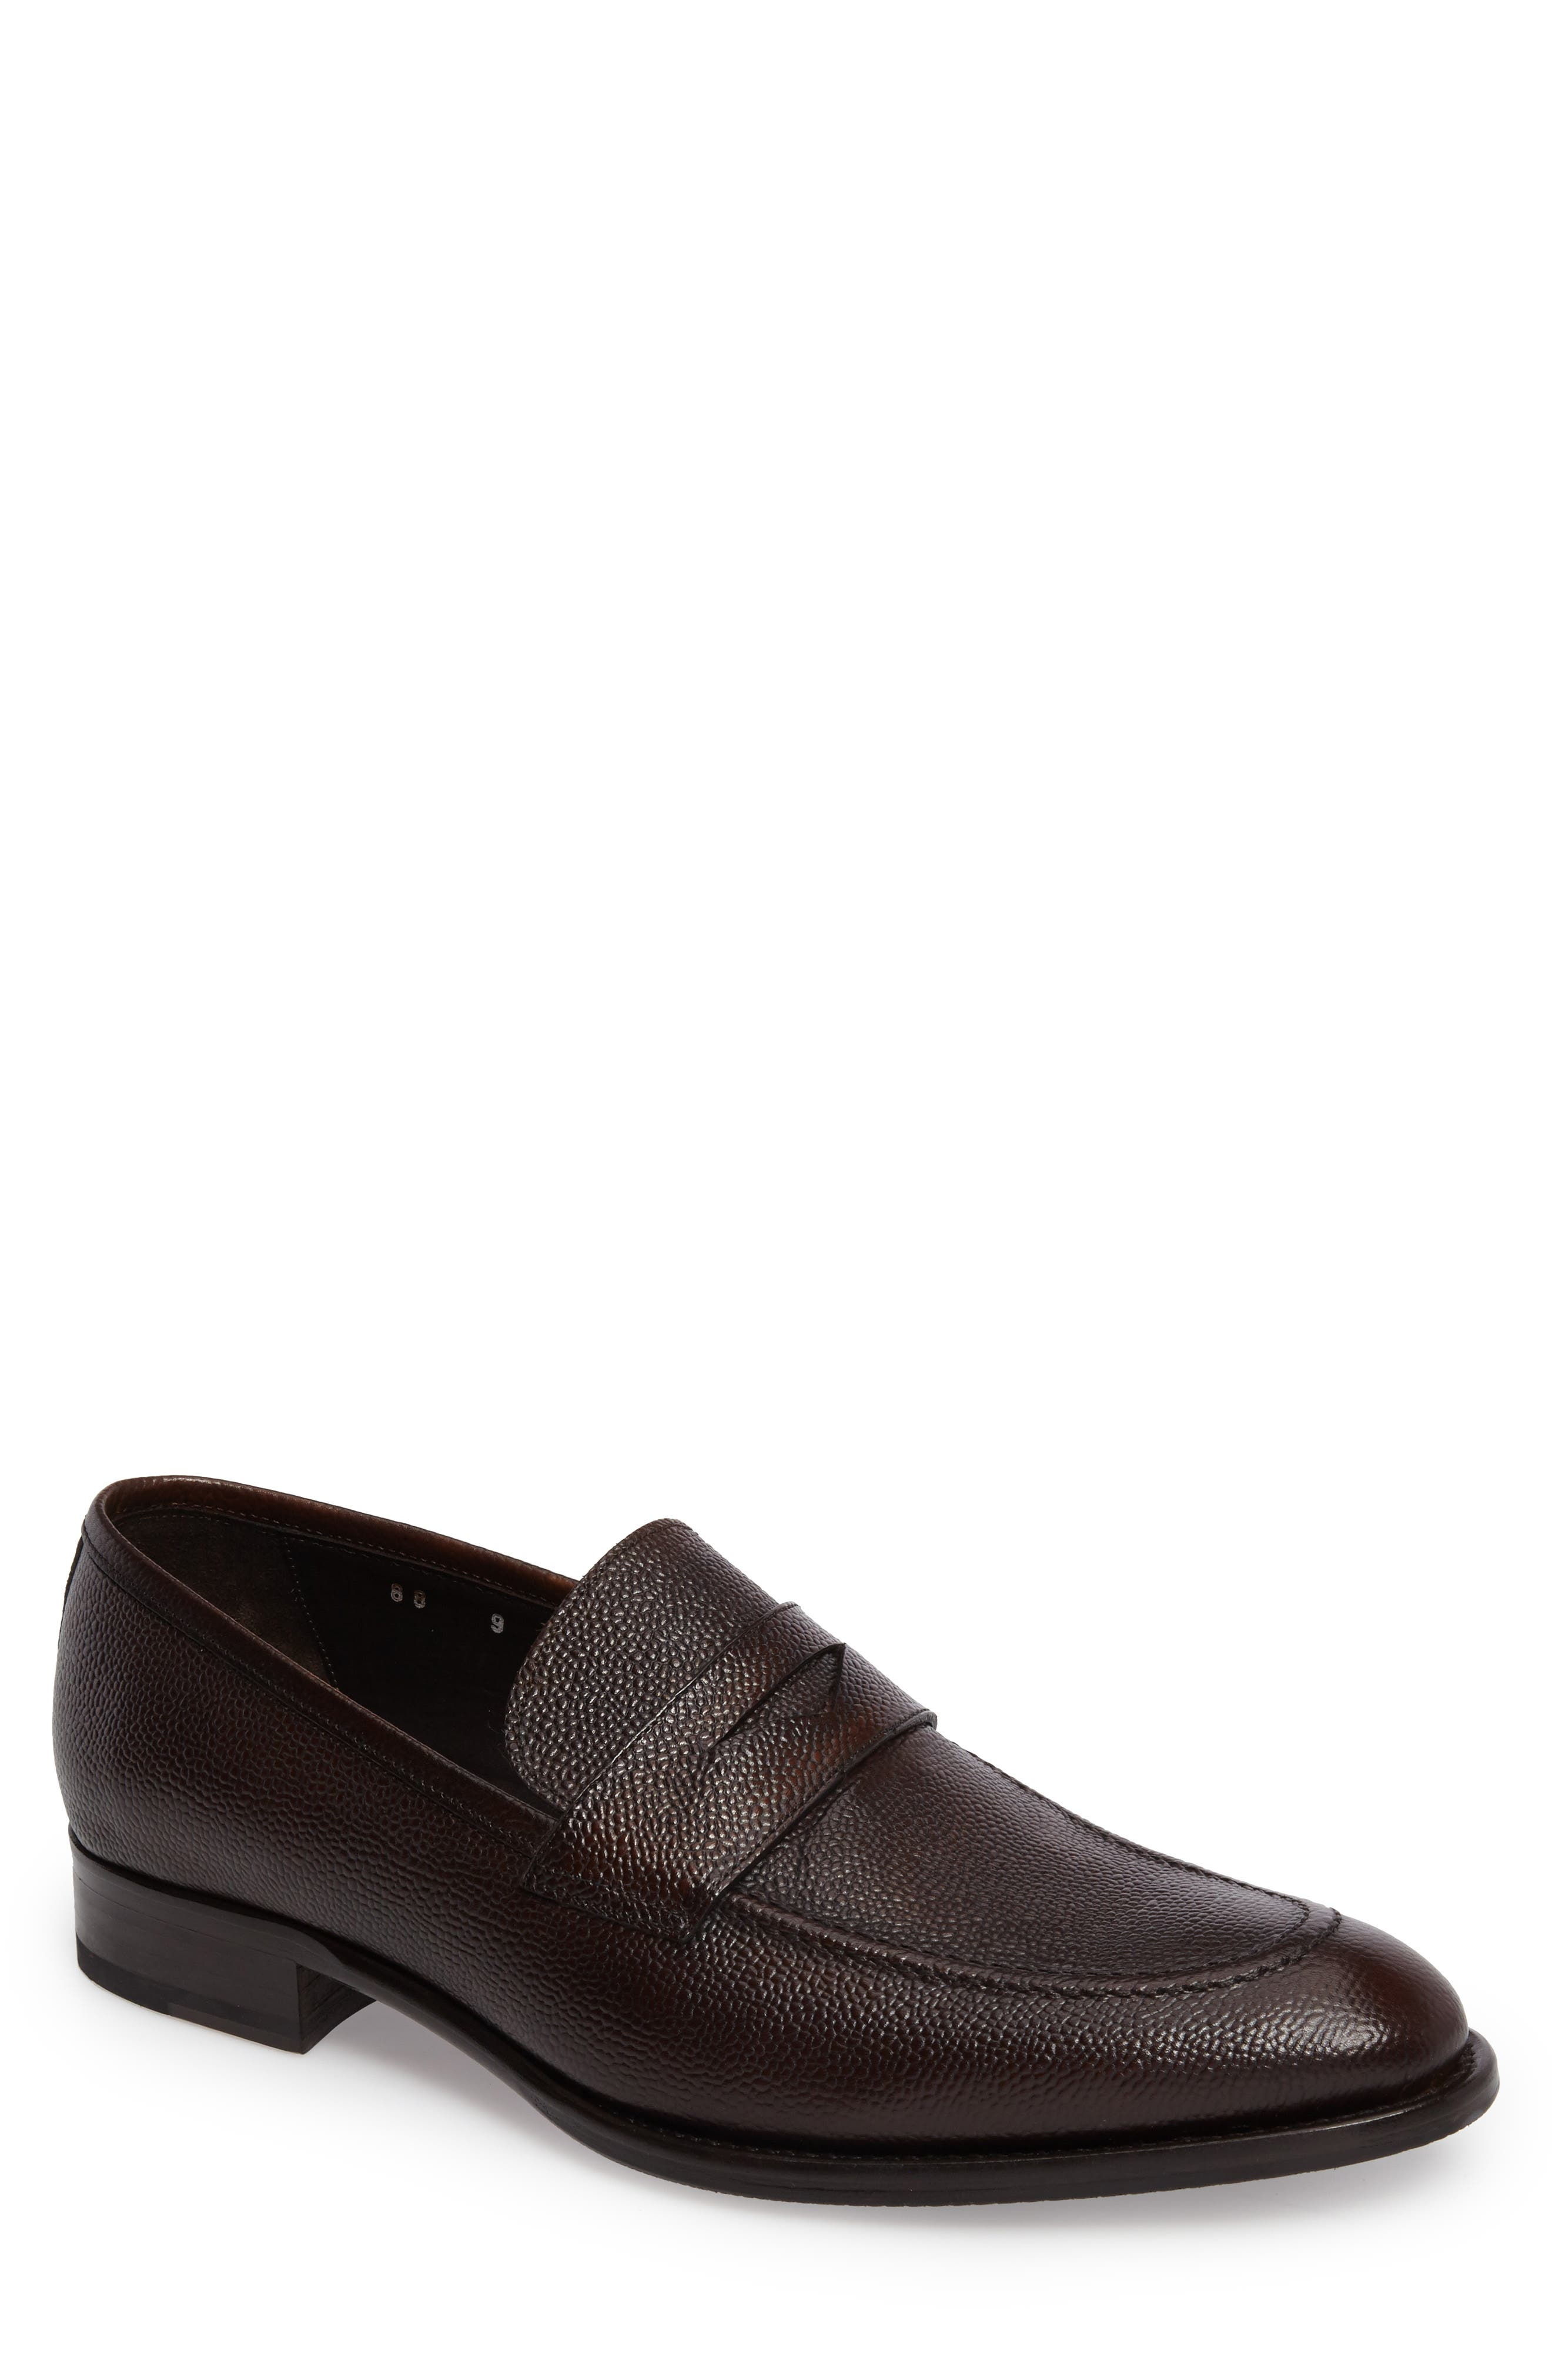 James Penny Loafer,                         Main,                         color, 200